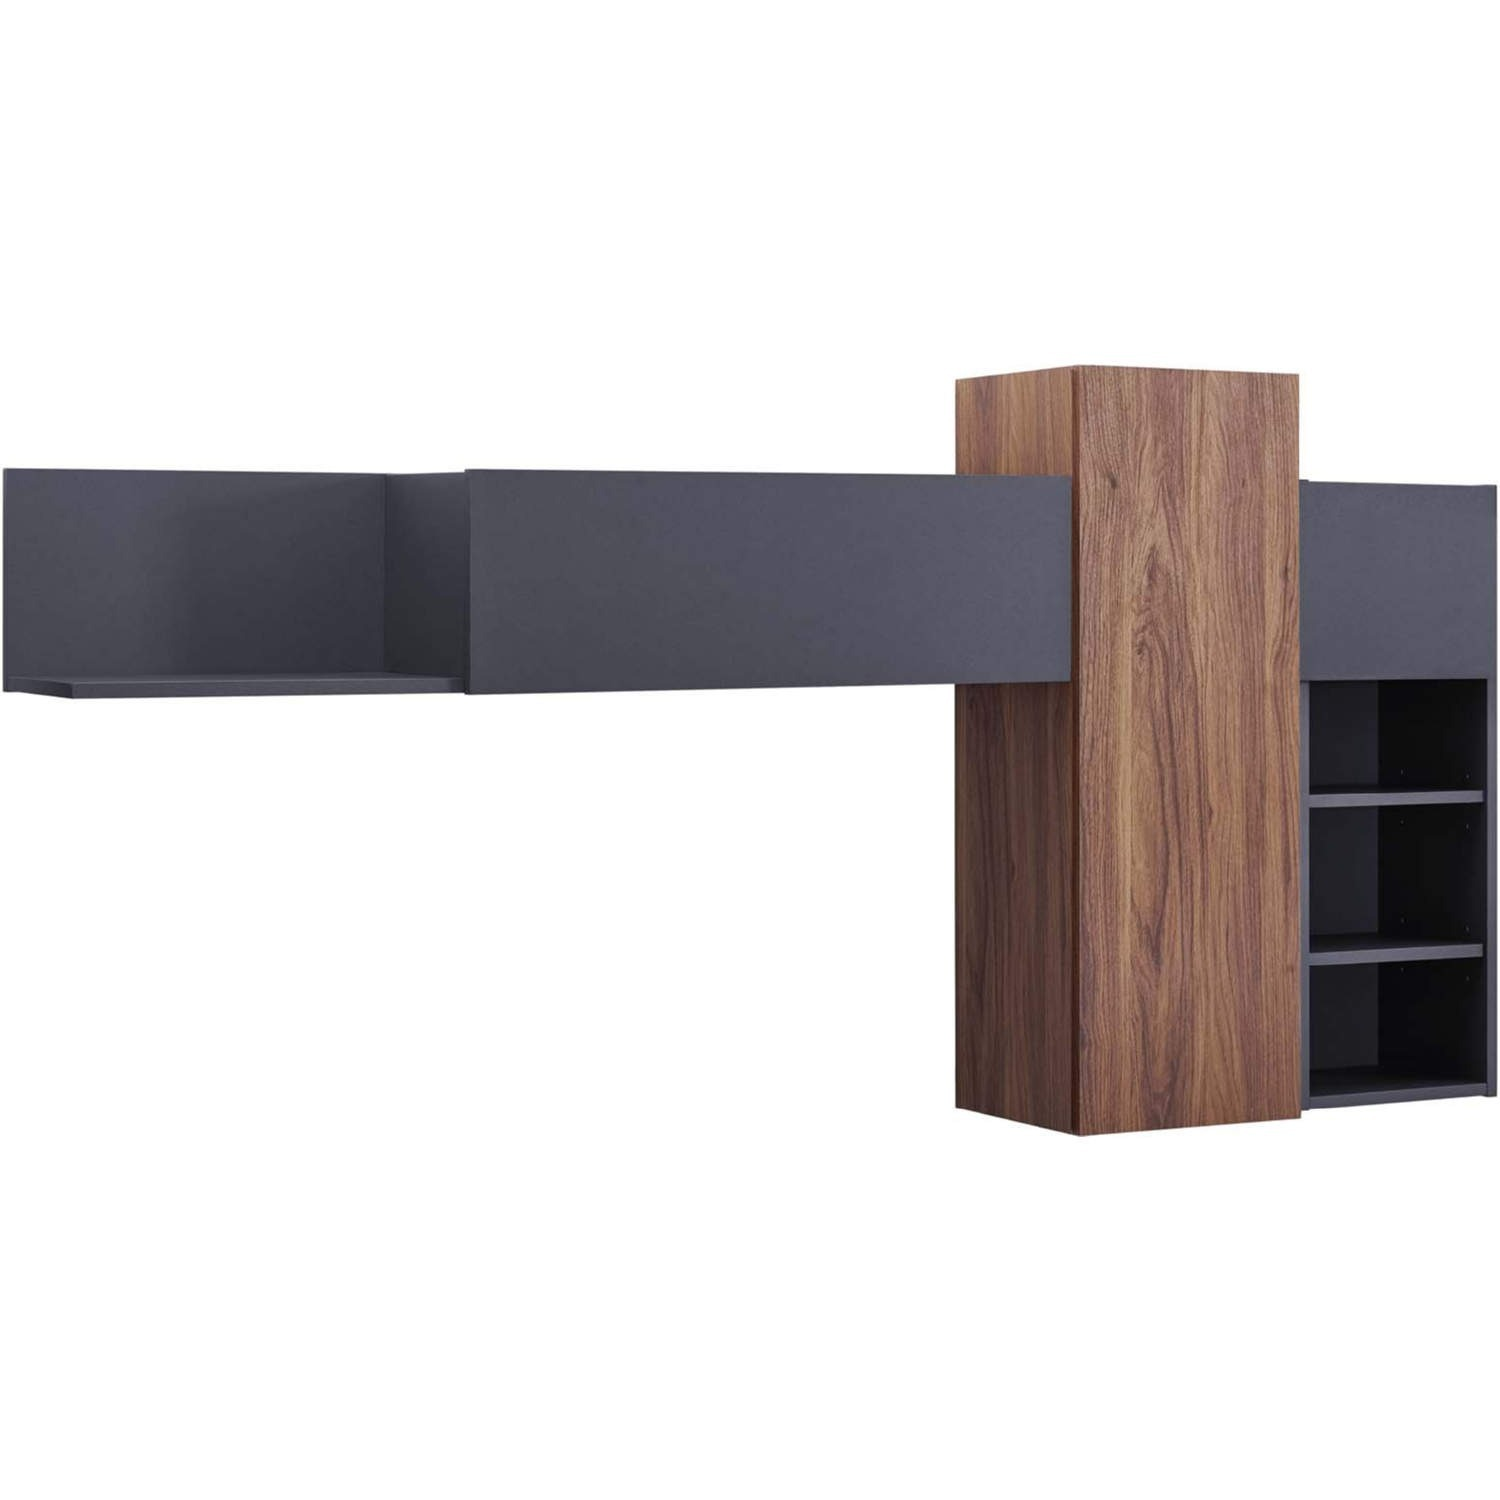 Wall Mounted Shelves In Gray & Walnut Finish - image-0